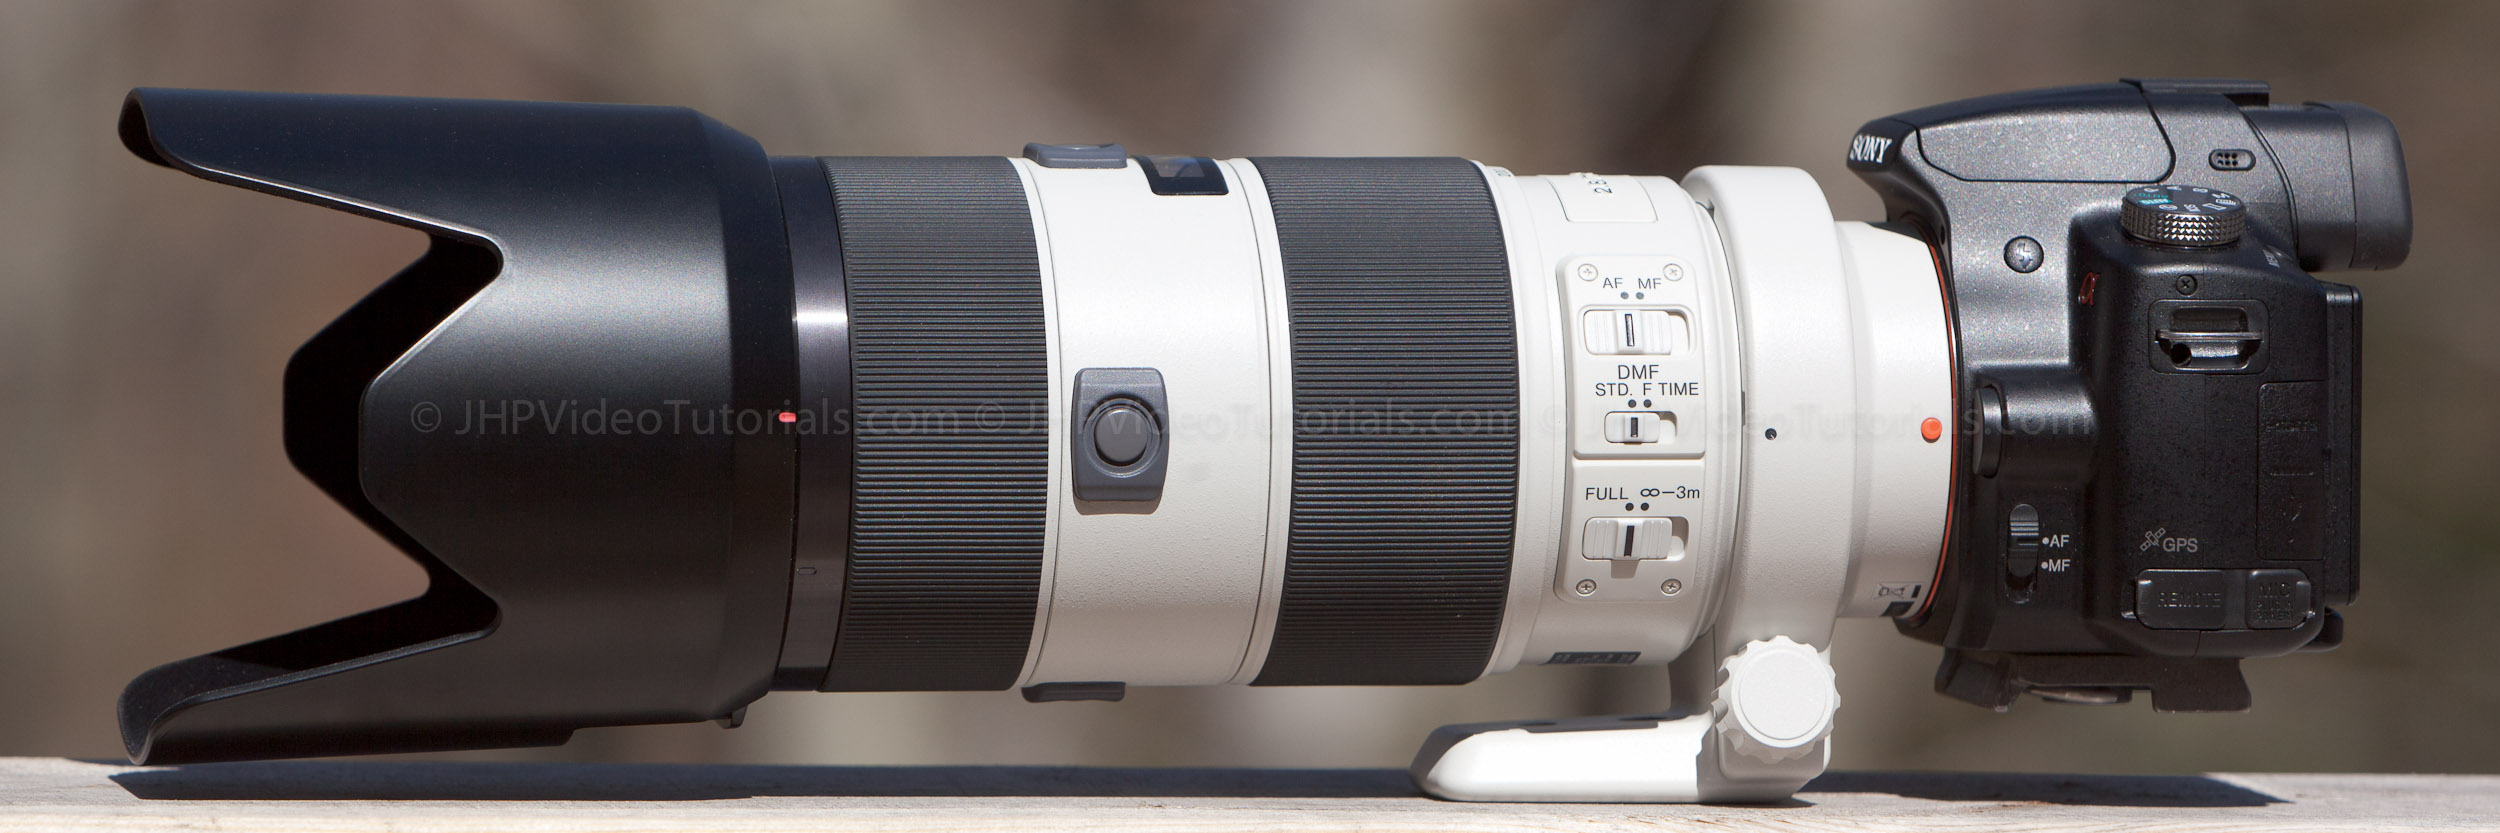 Sony 70 200mm F 28 Apo Gd Ssm Lens Review Sal70200g Tamron Di Ld If Macro Af For Nikon On